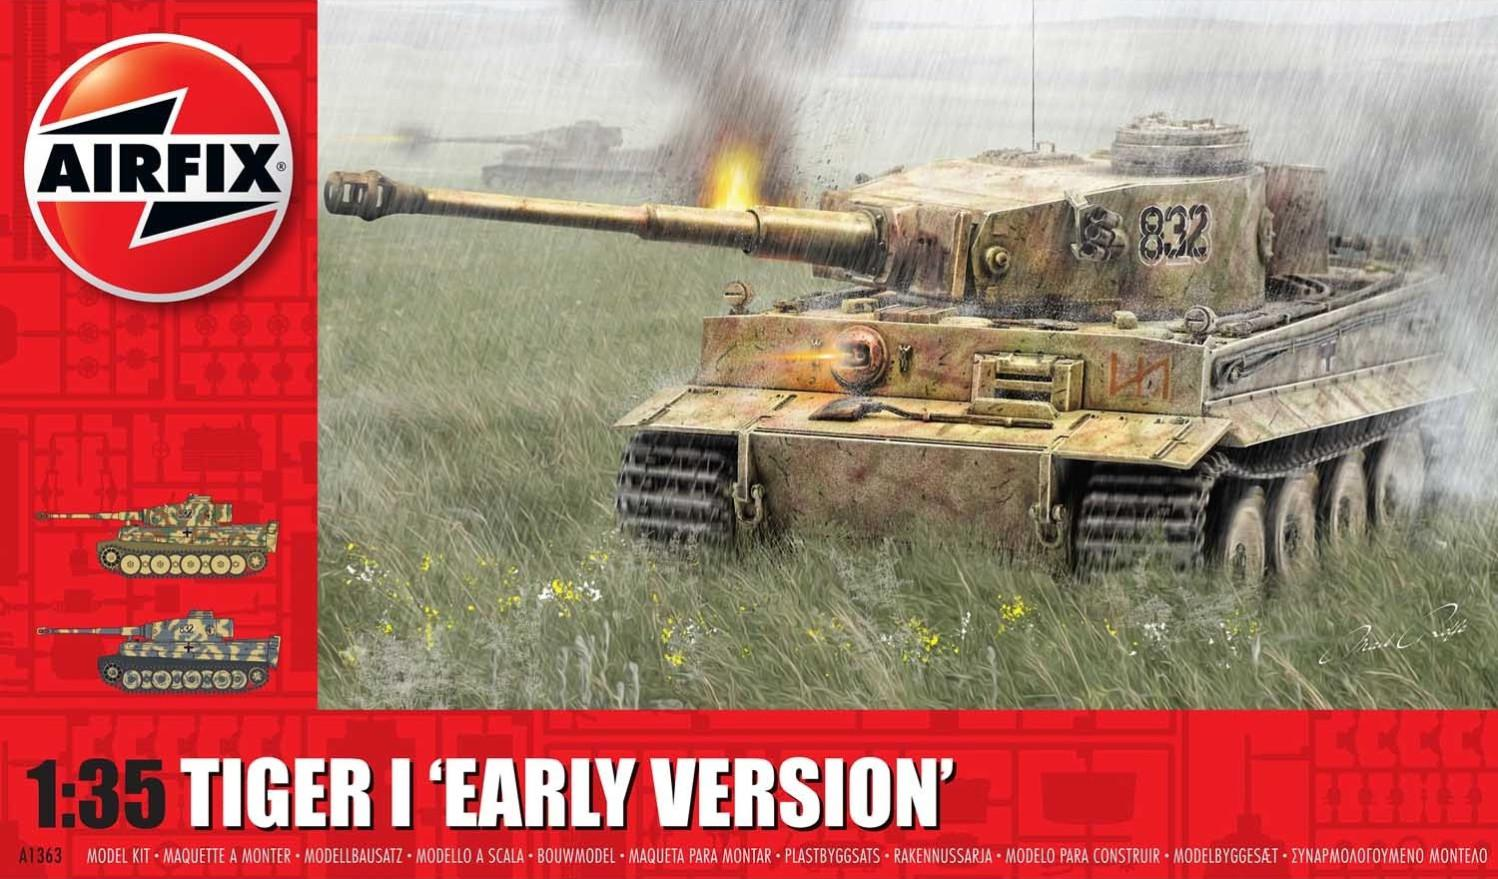 Airfix Tiger 1 Early Version 1:35 A1363